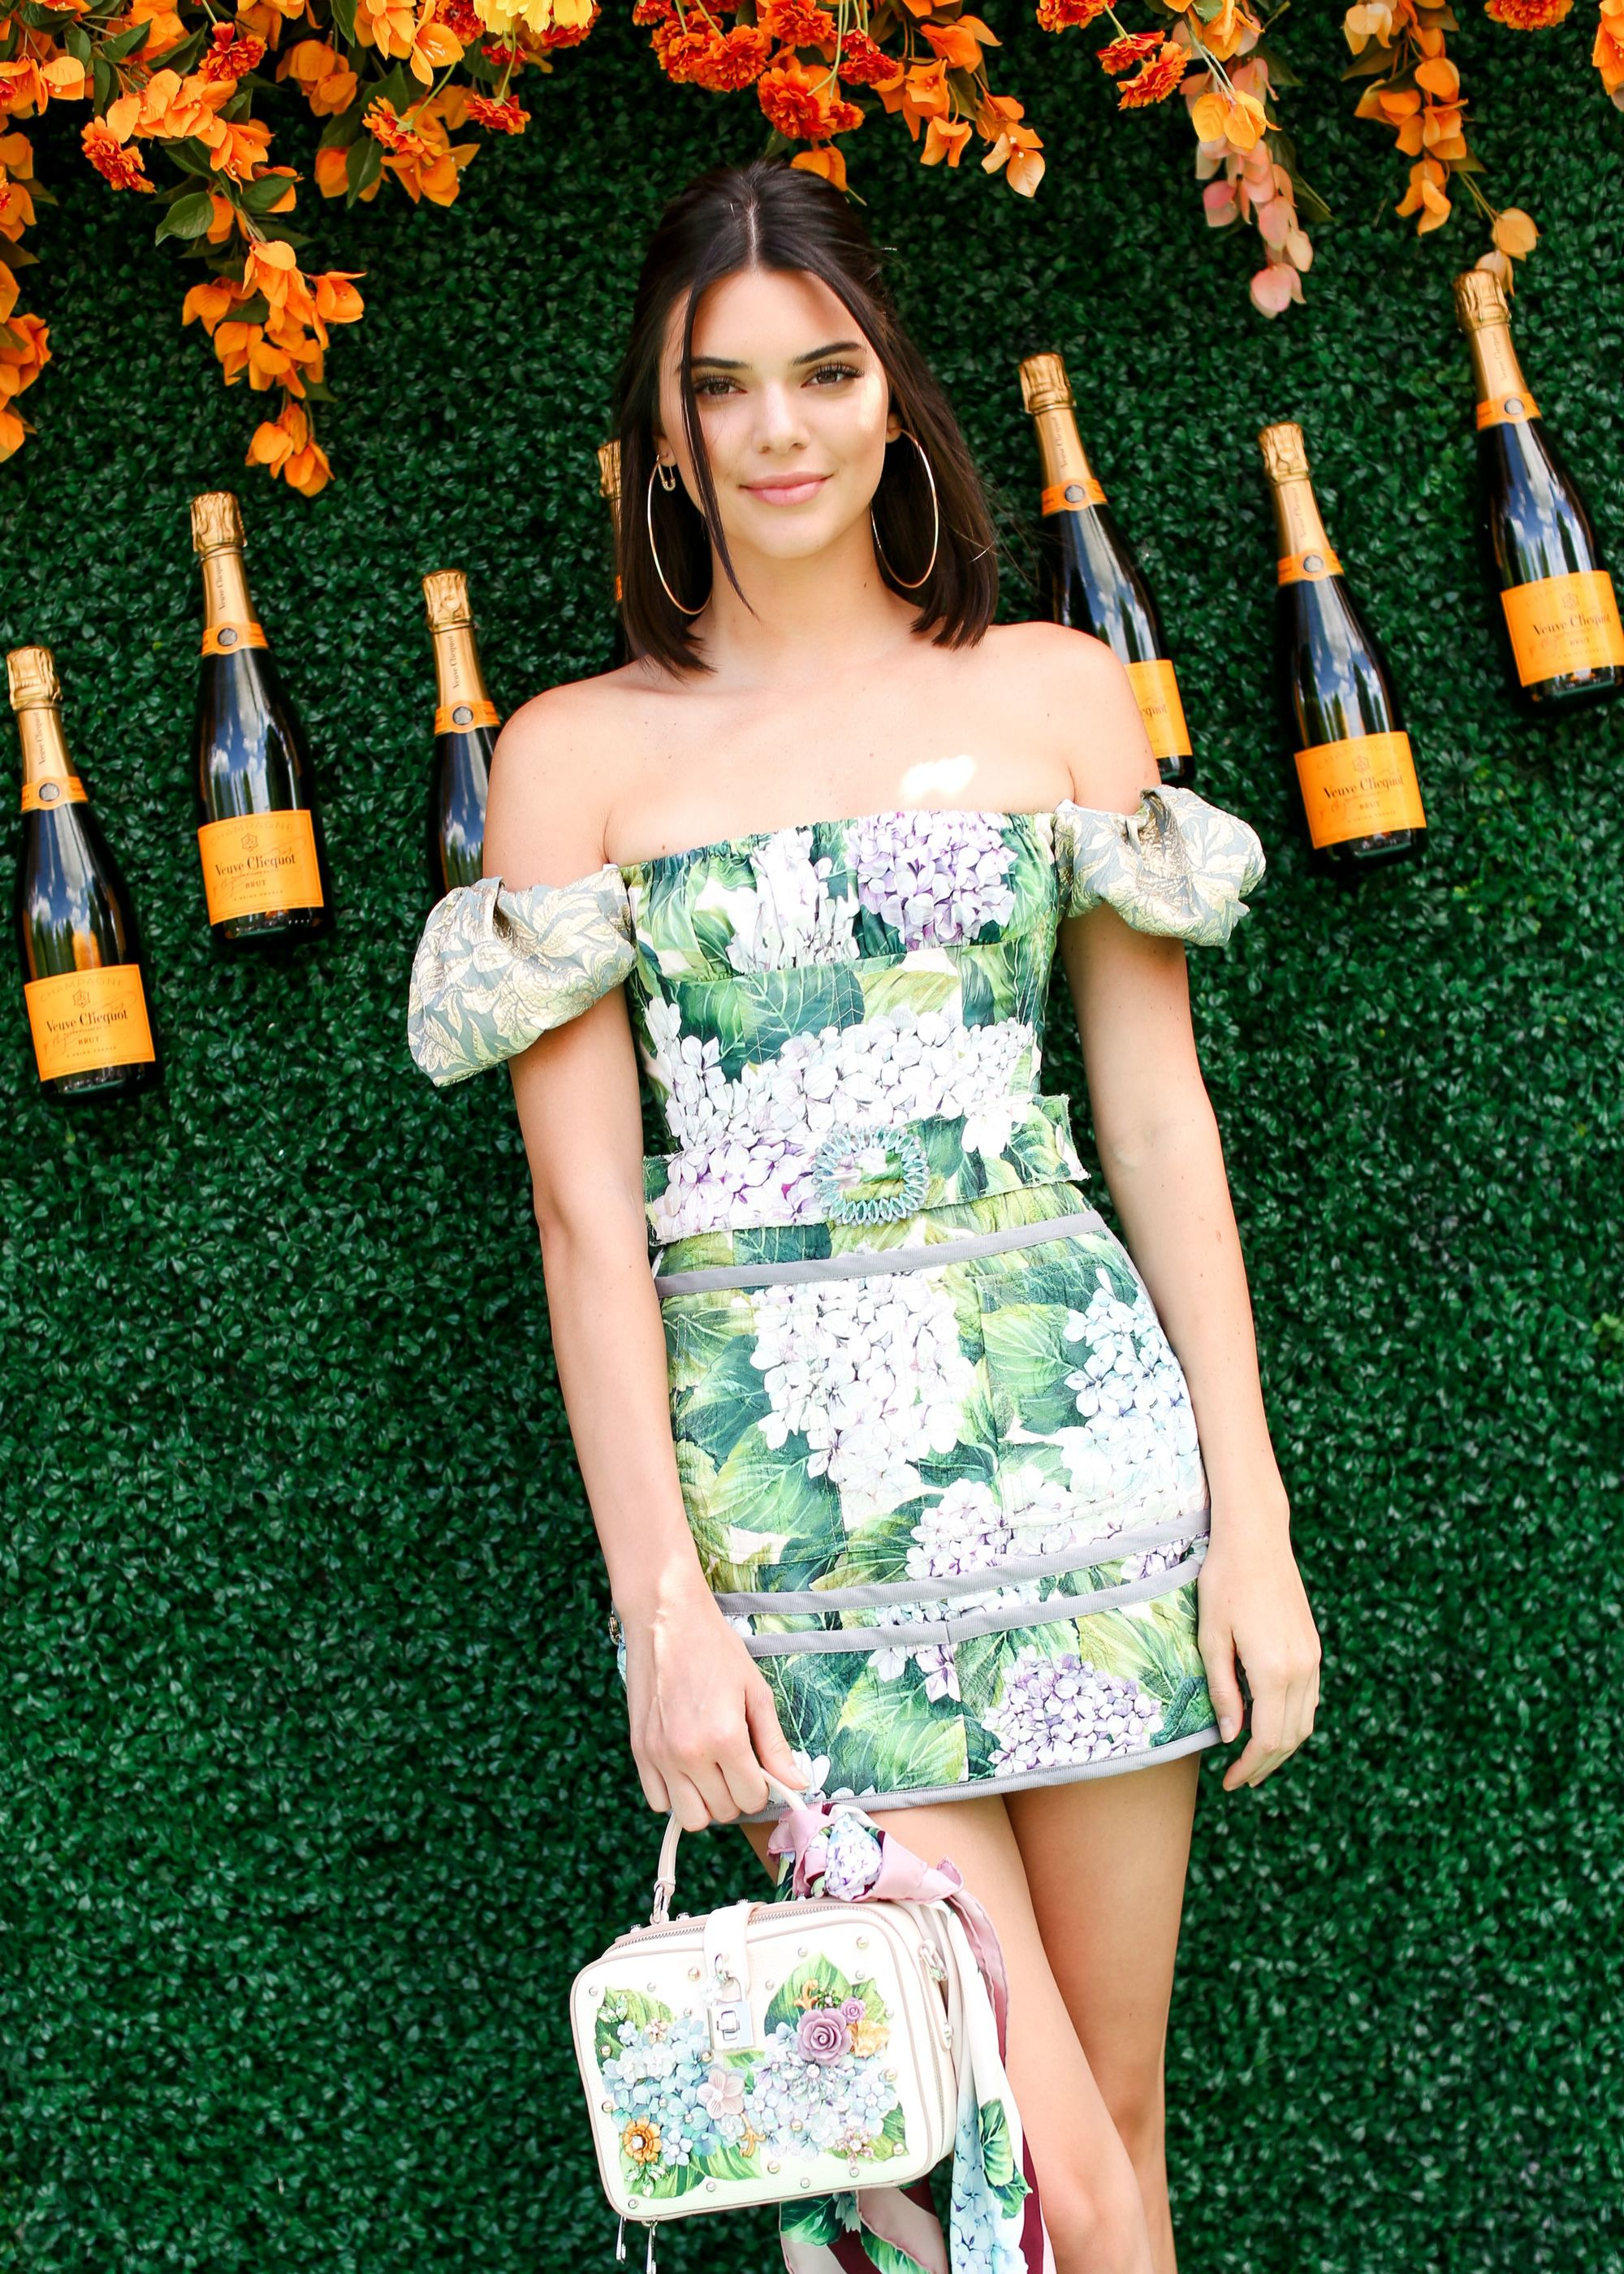 Short summer hairstyles - Kendall Jenner - half-up, half-down hairstyle on lob length black hair